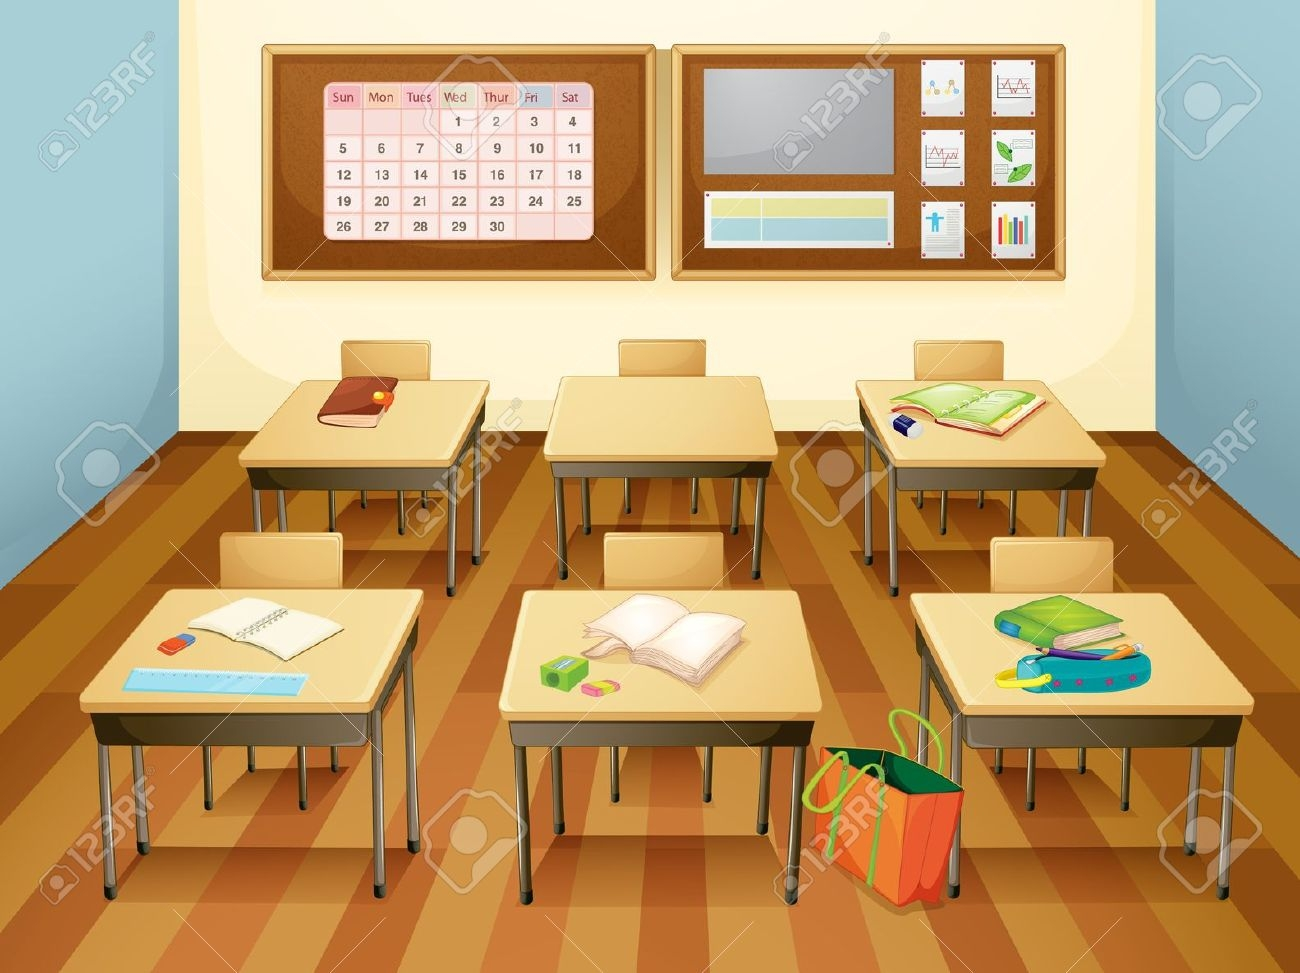 classroom clipart gallery-classroom clipart gallery-6